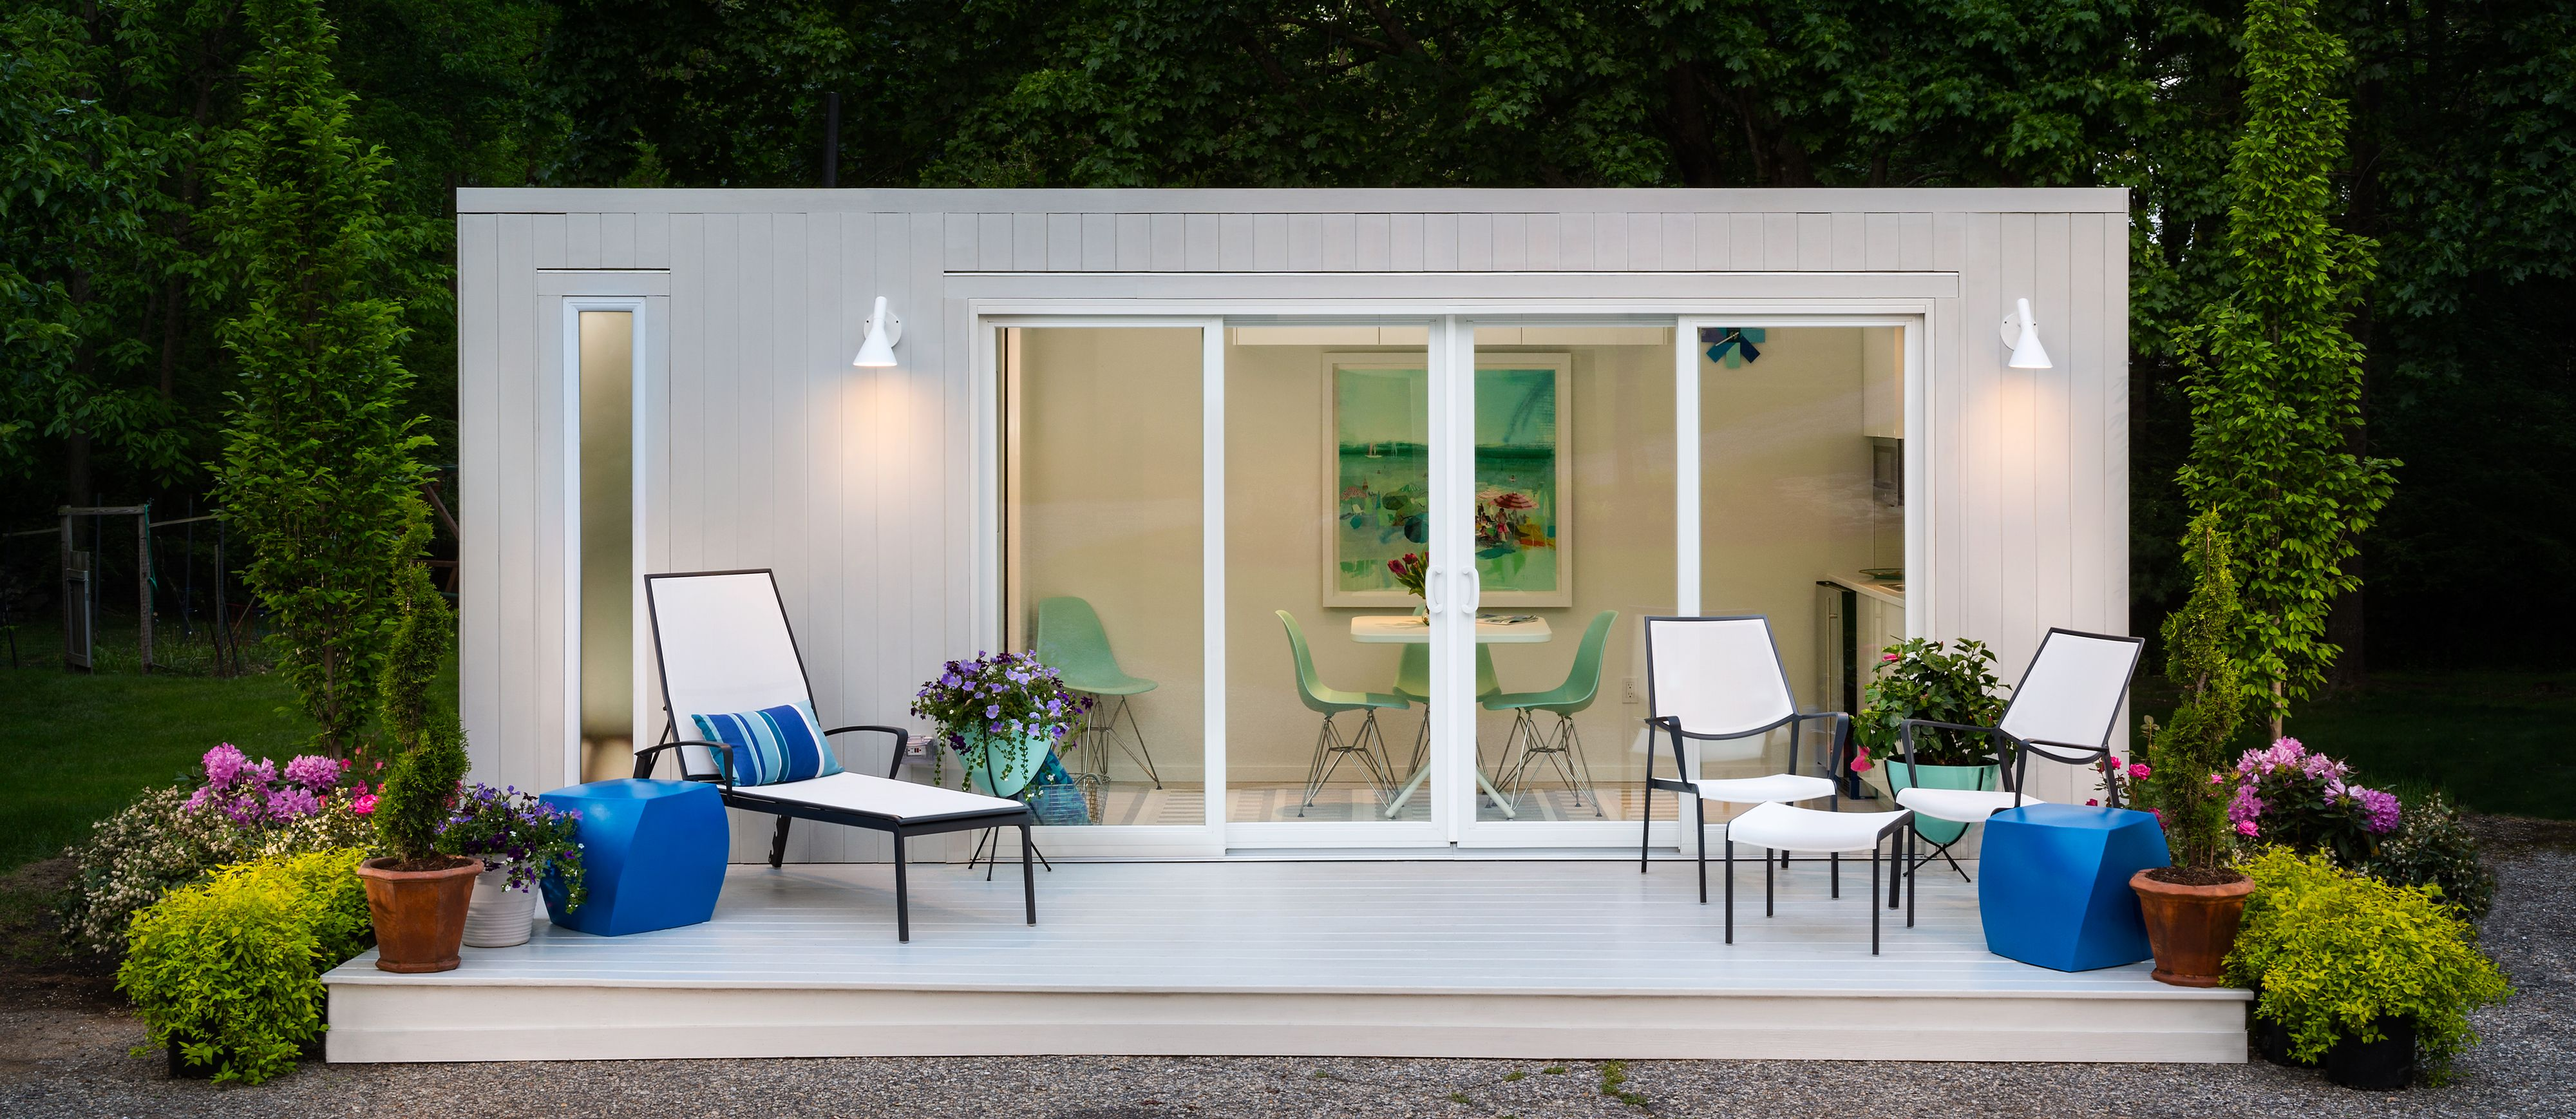 Elbar Pool Houses | From Shipping Containers to Pool Houses ...